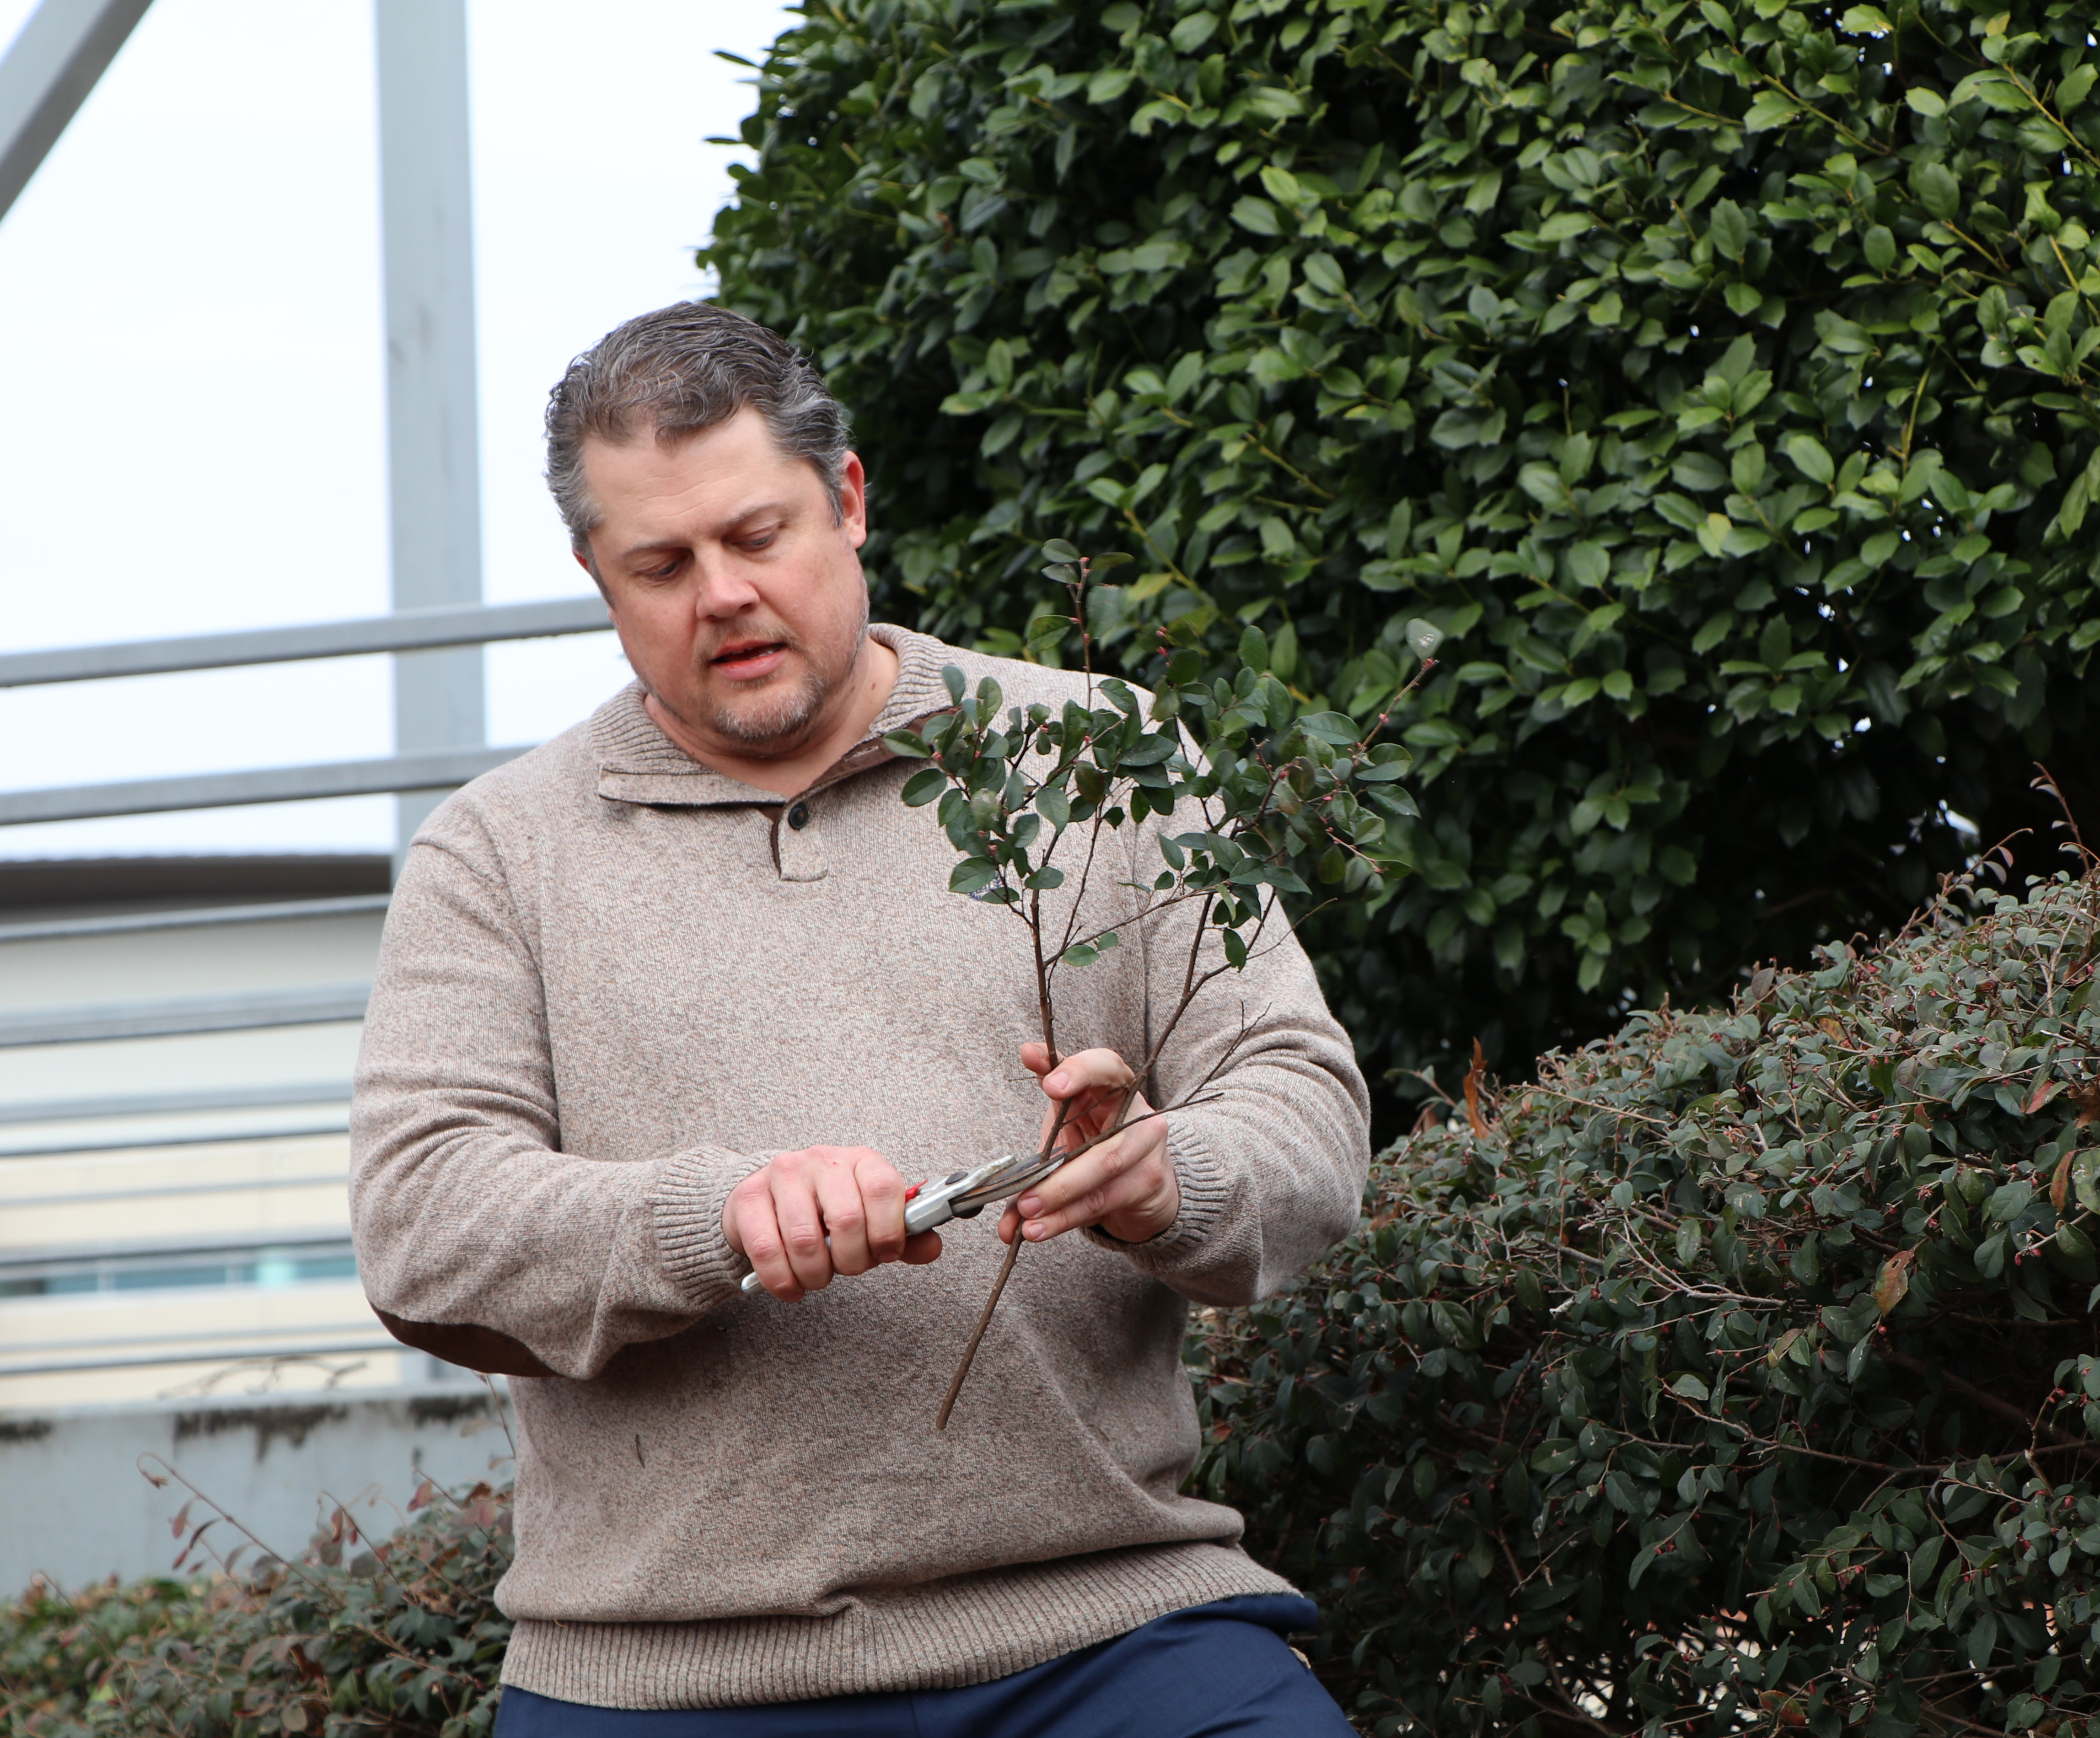 UGA horticulture Professor Matt Chappell demonstrated proper pruning technique at a green industry event in January 2020.